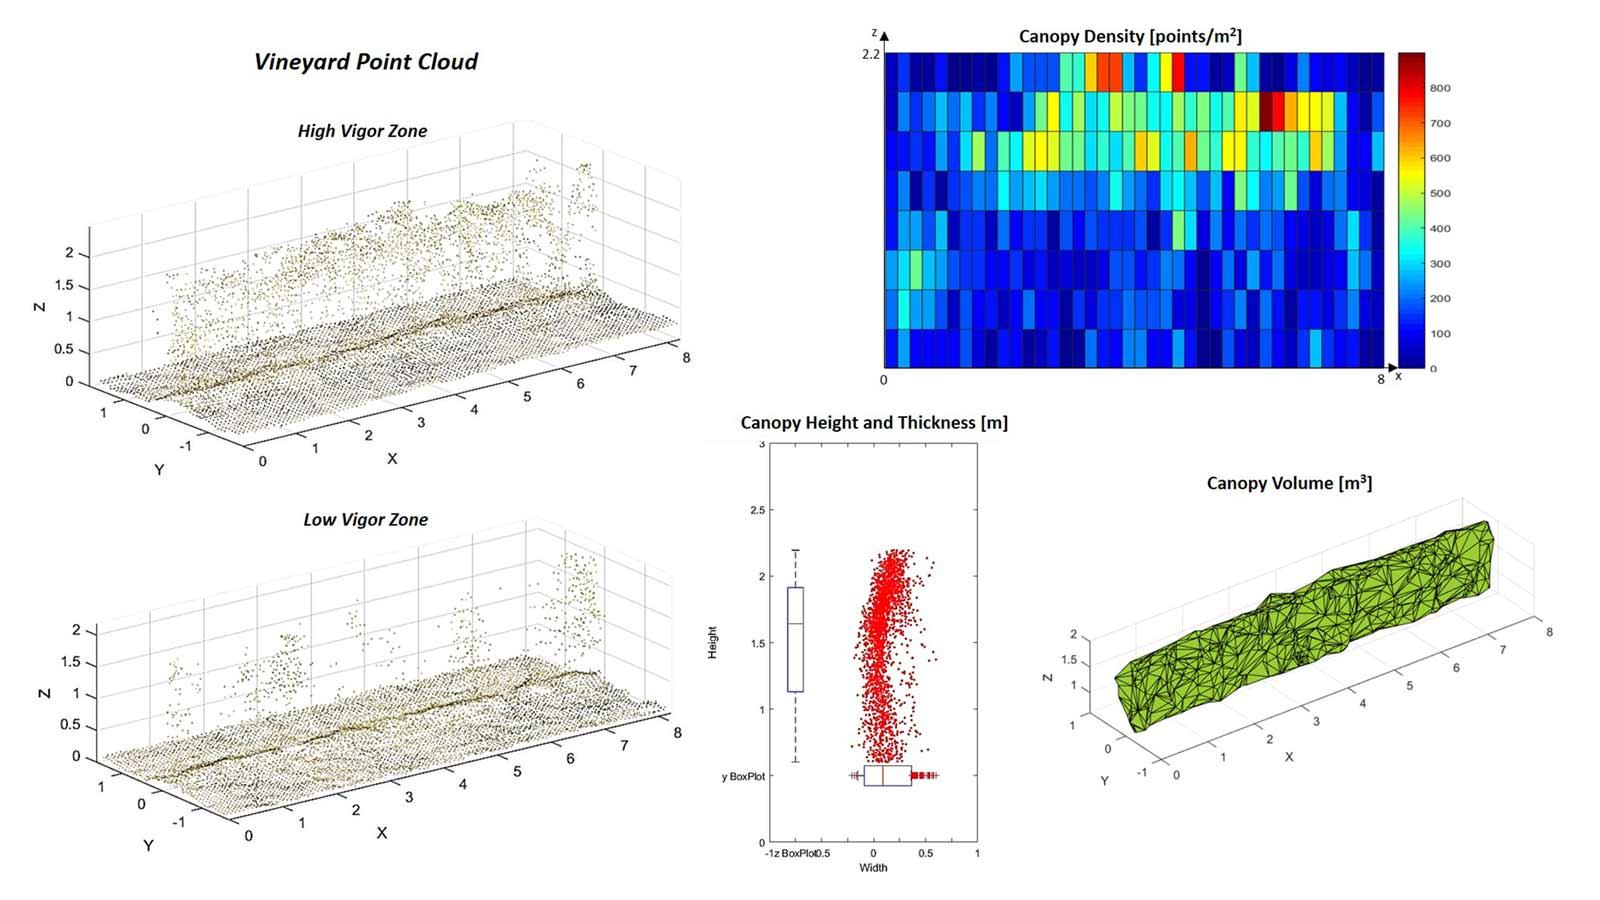 Bolgheri vineyard point cloud analysis